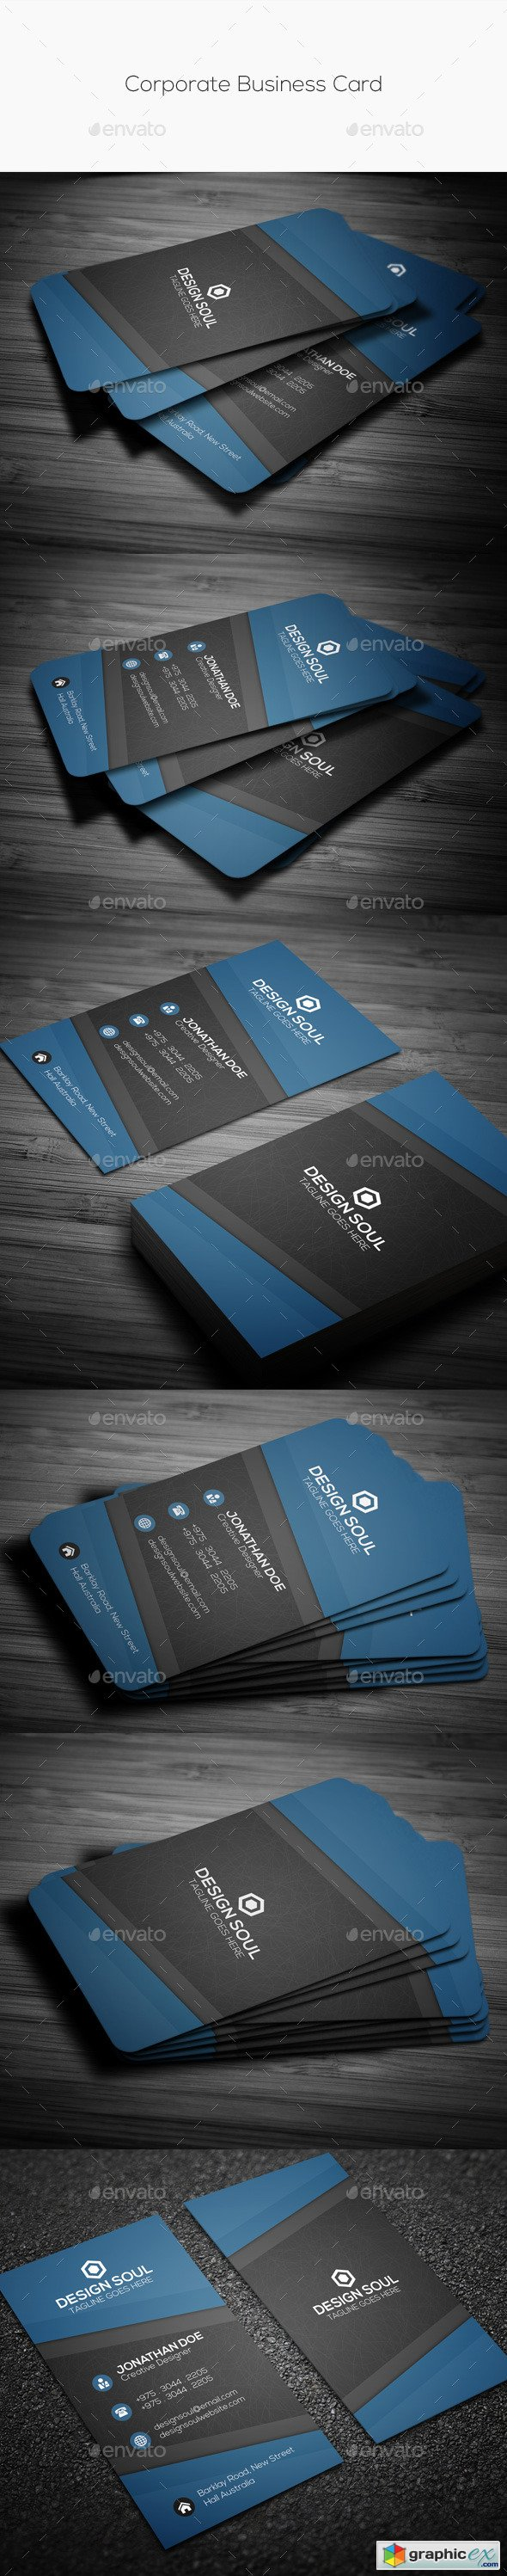 Corporate Business Card 10853425